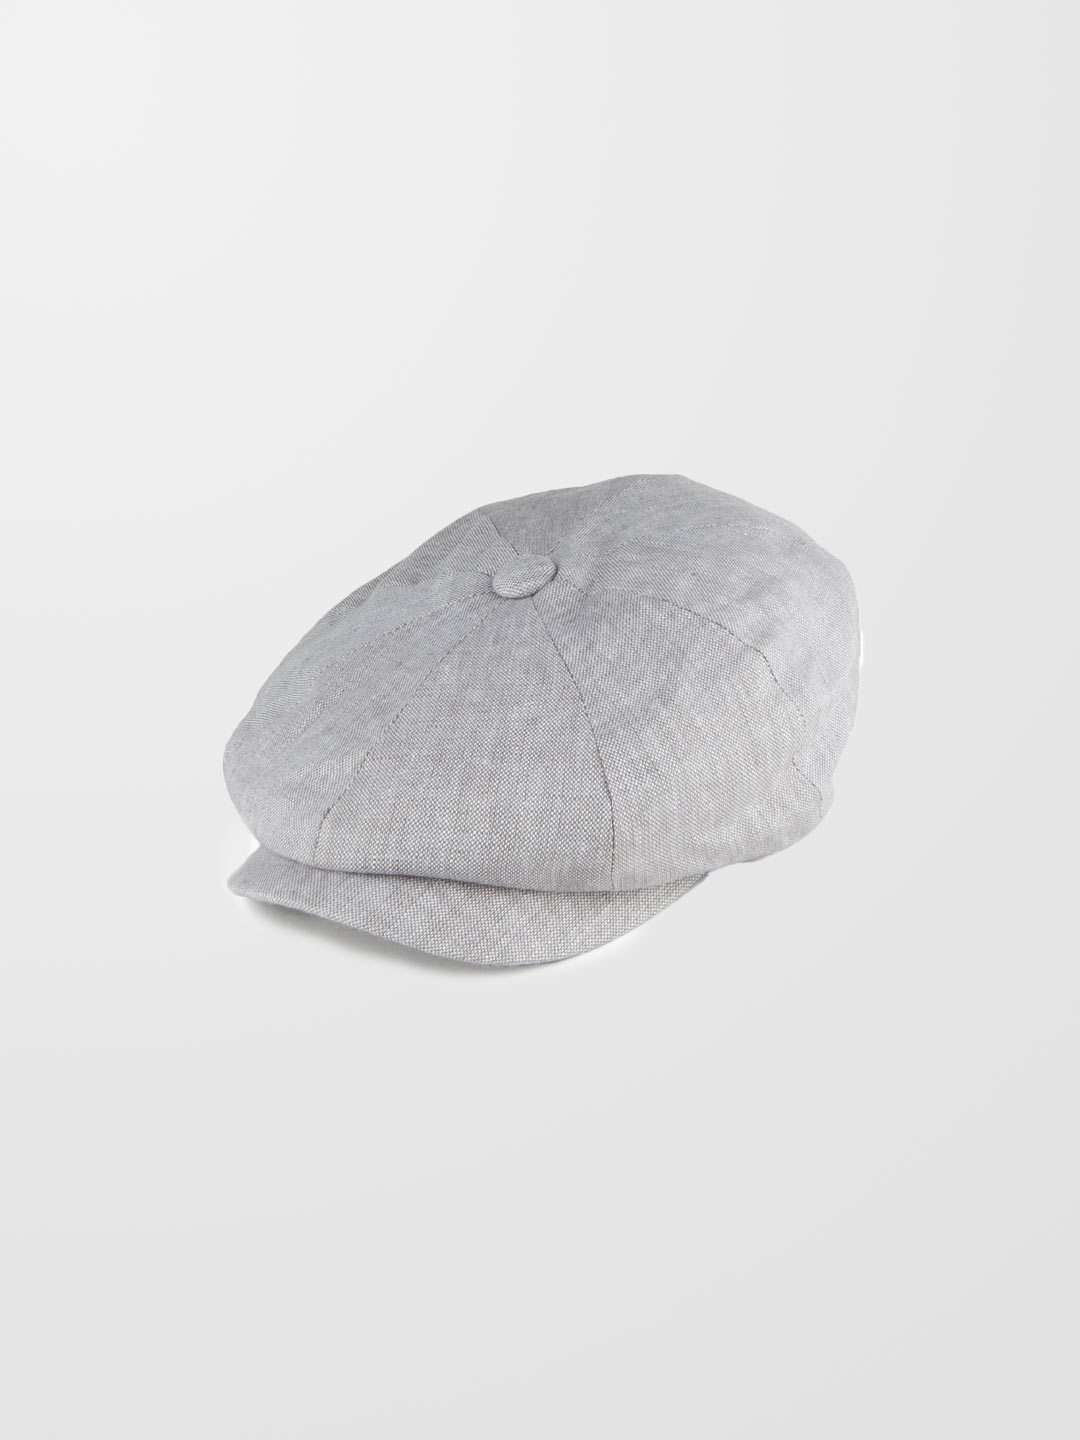 Failsworth Irish Linen Alfie Newsboy Cap